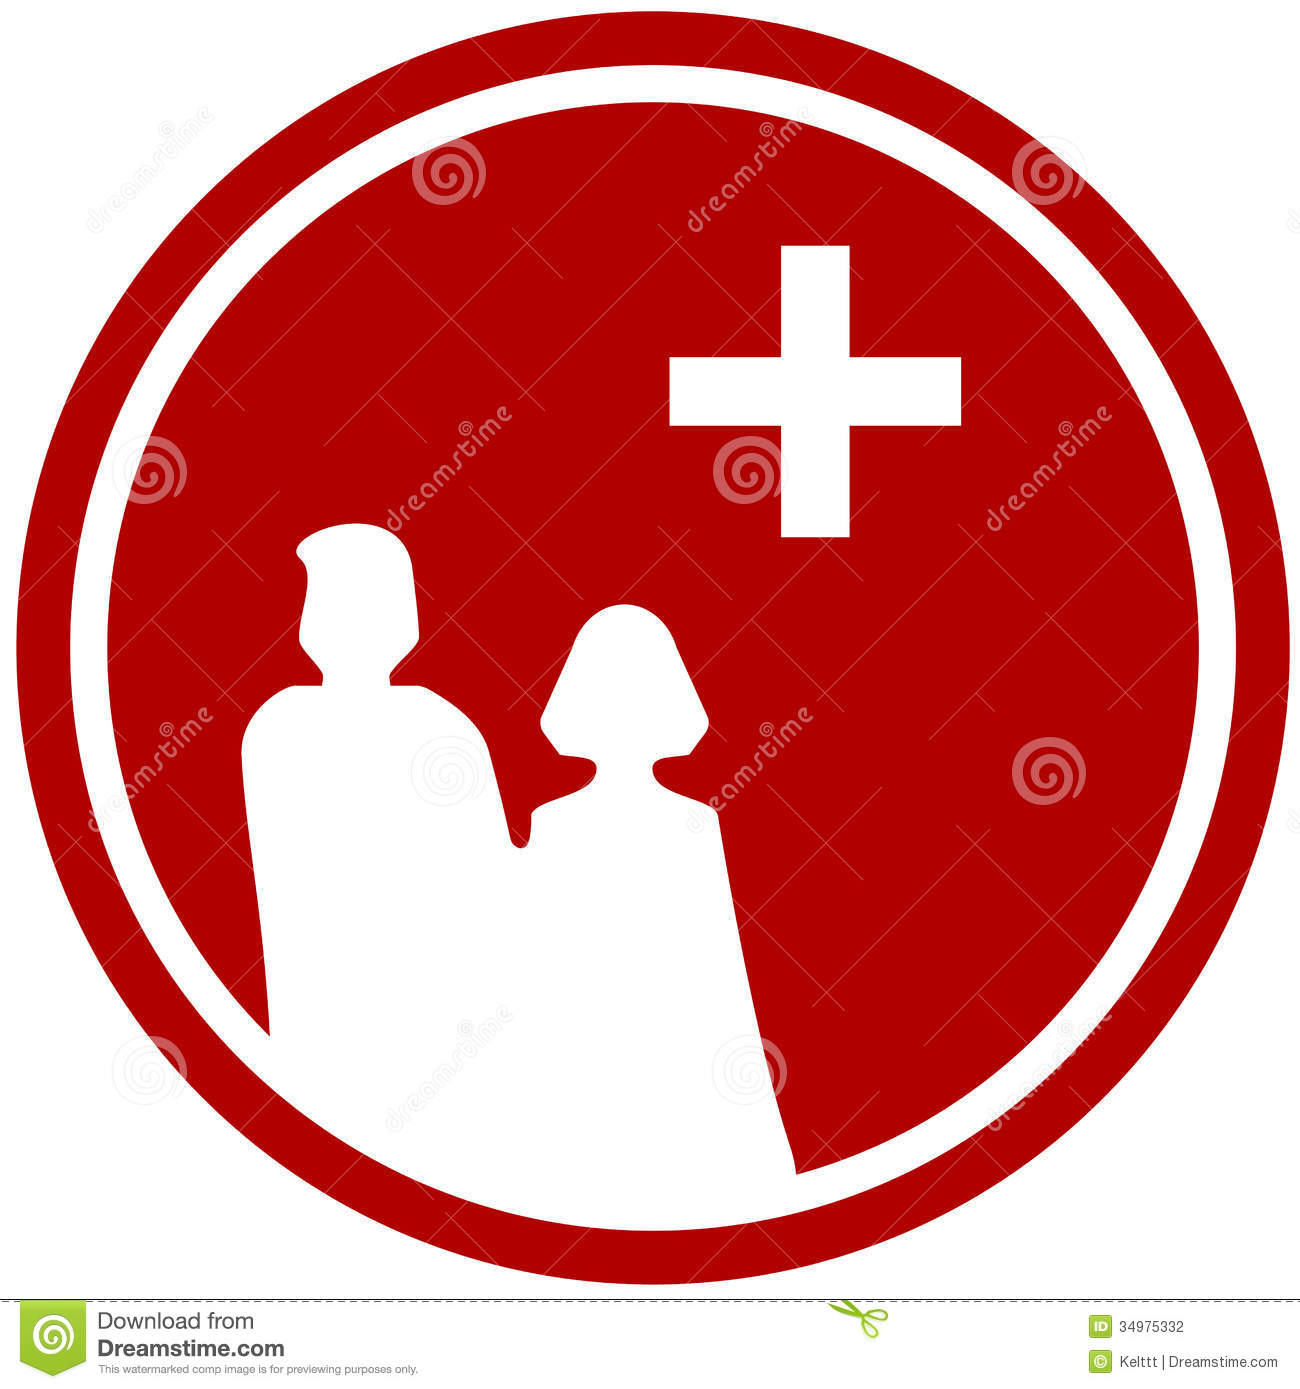 Family silhouette and medical symbol illustration 34975332 megapixl family silhouette and medical symbol biocorpaavc